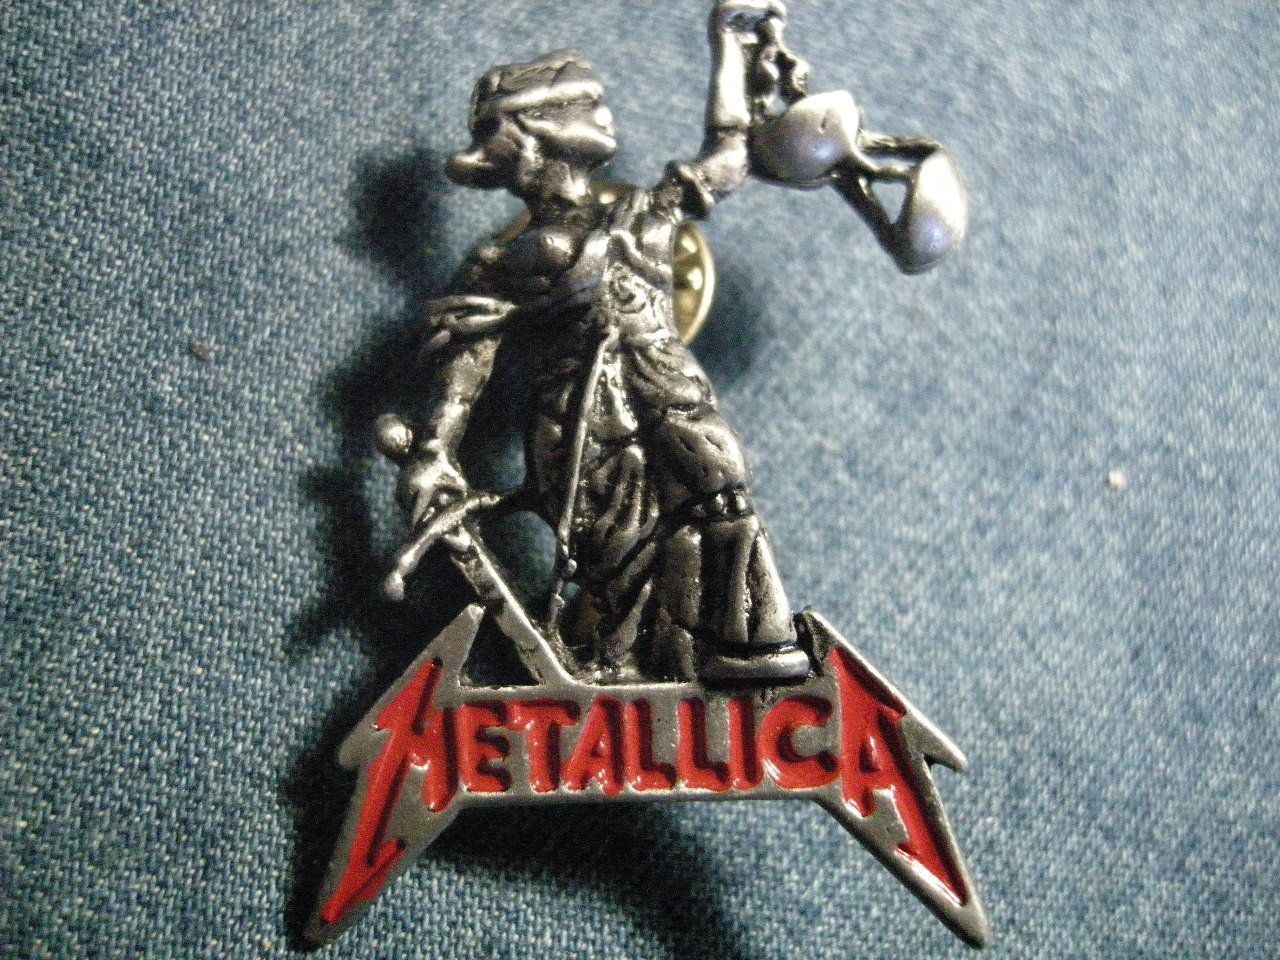 METALLICA METAL PIN And Justice For All logo badge VINTAGE